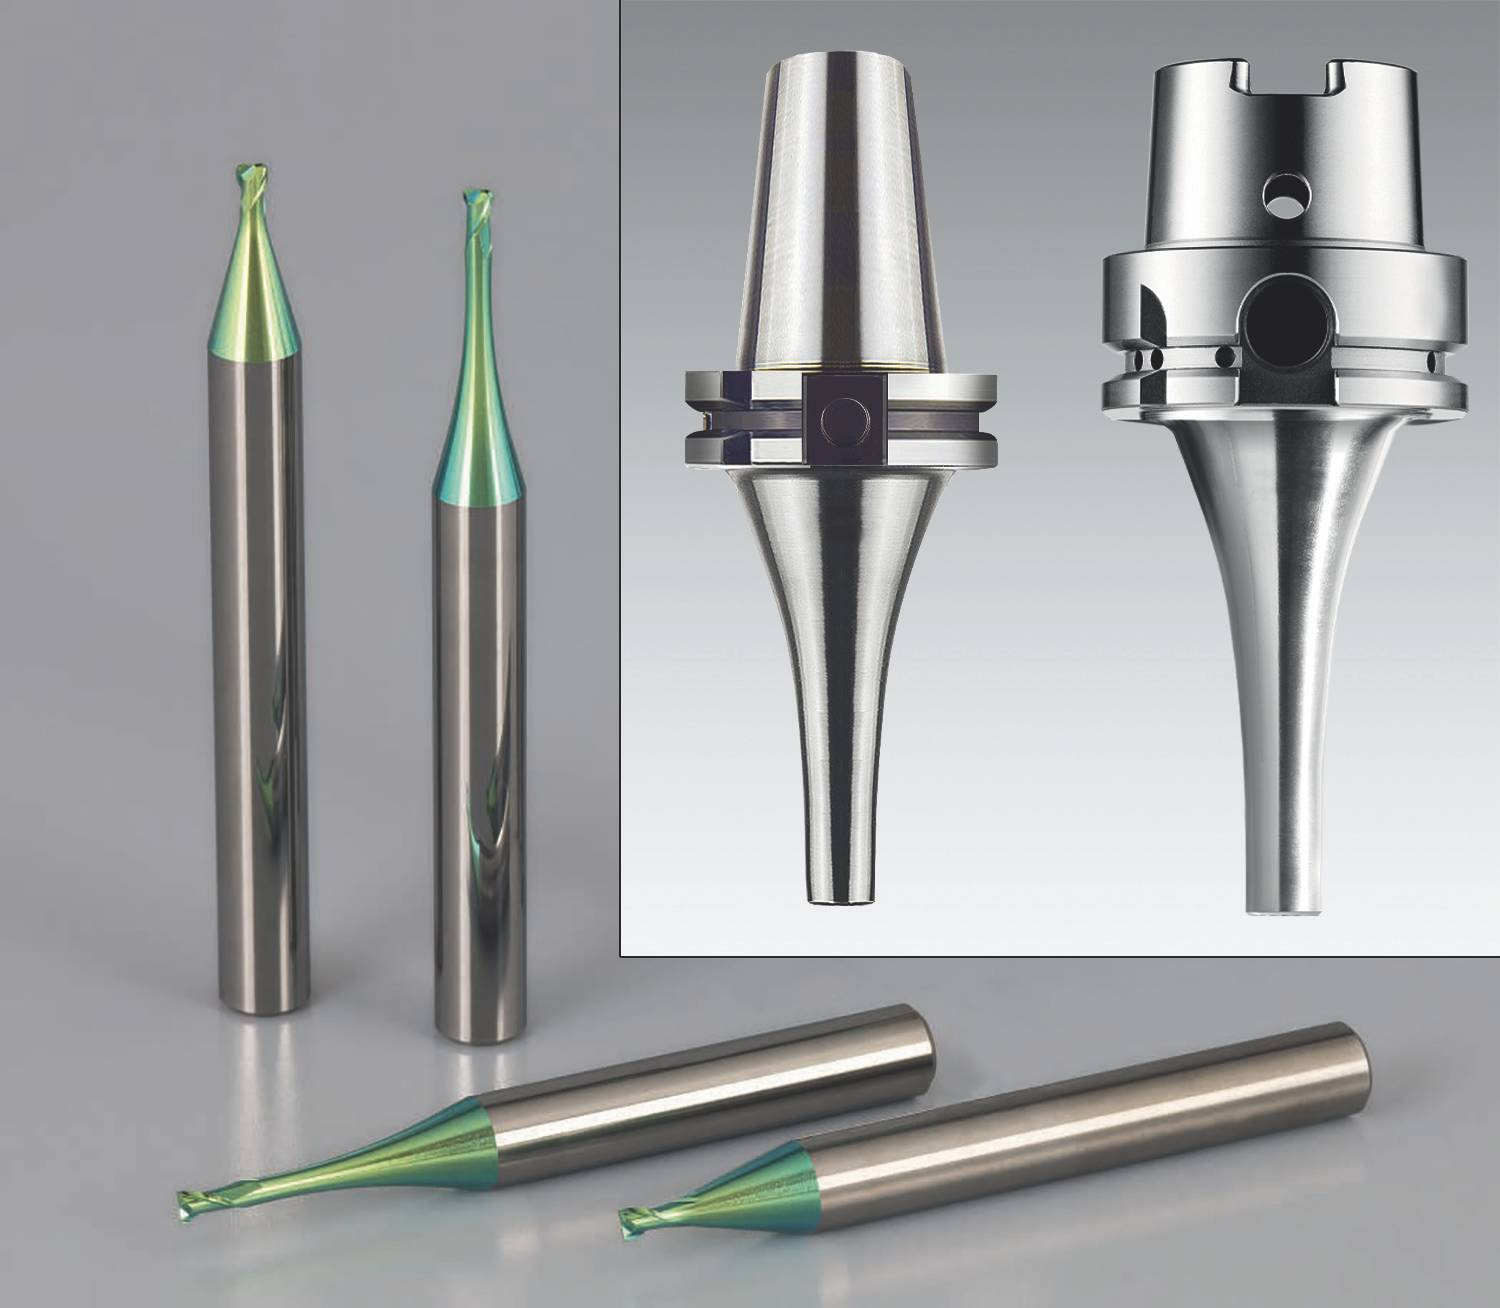 Emuge's new end mills are available in solid carbide and CBN